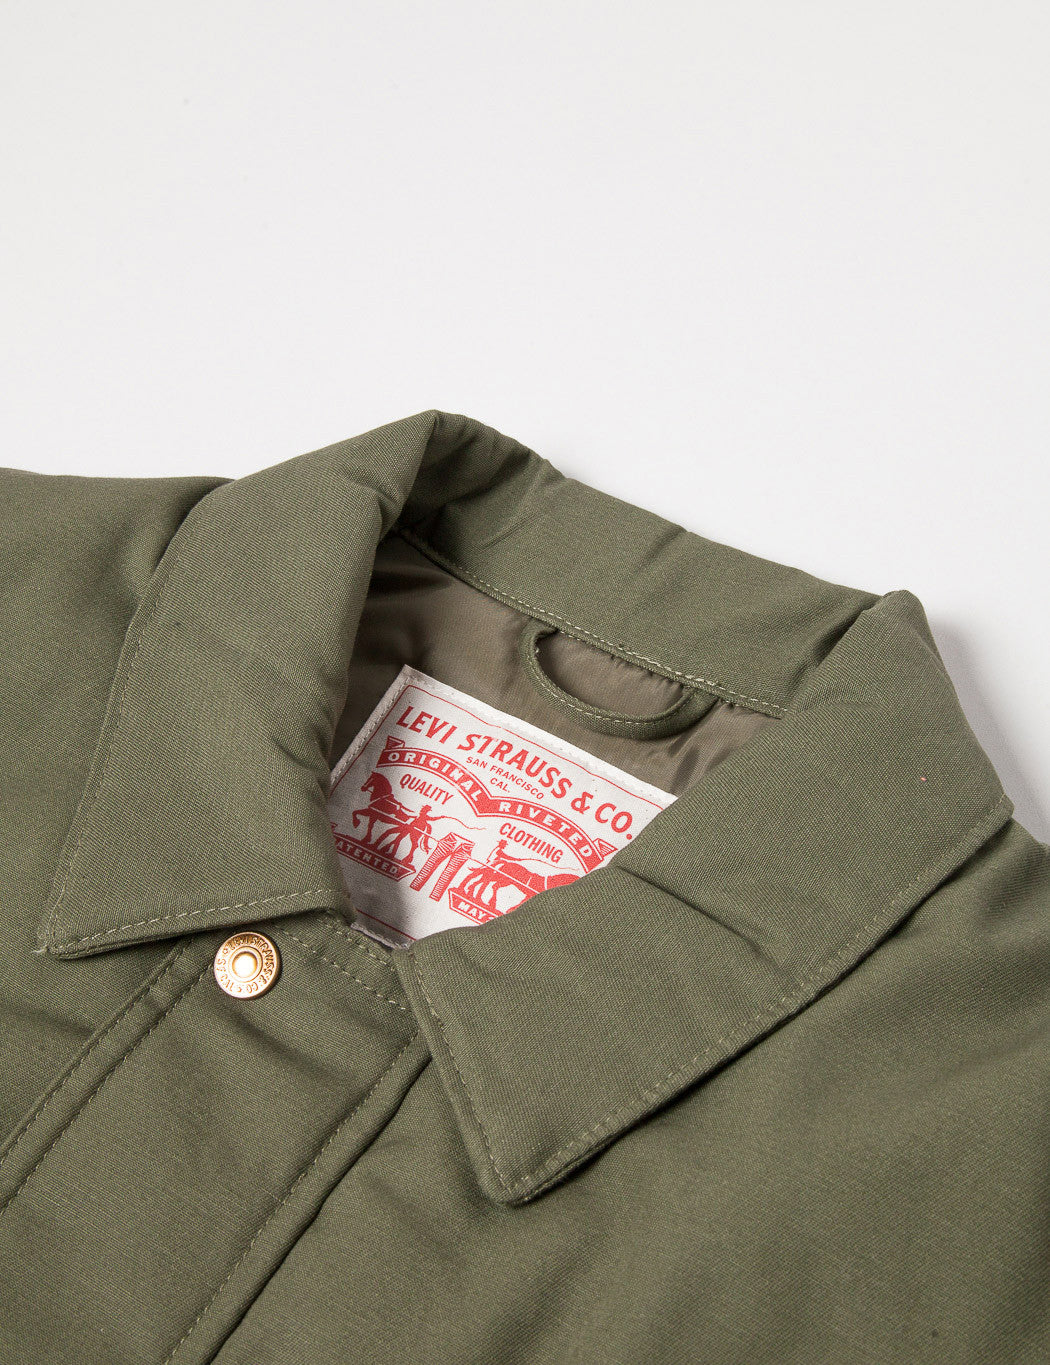 Levis Insulated Utility Jacket - Burnt Olive